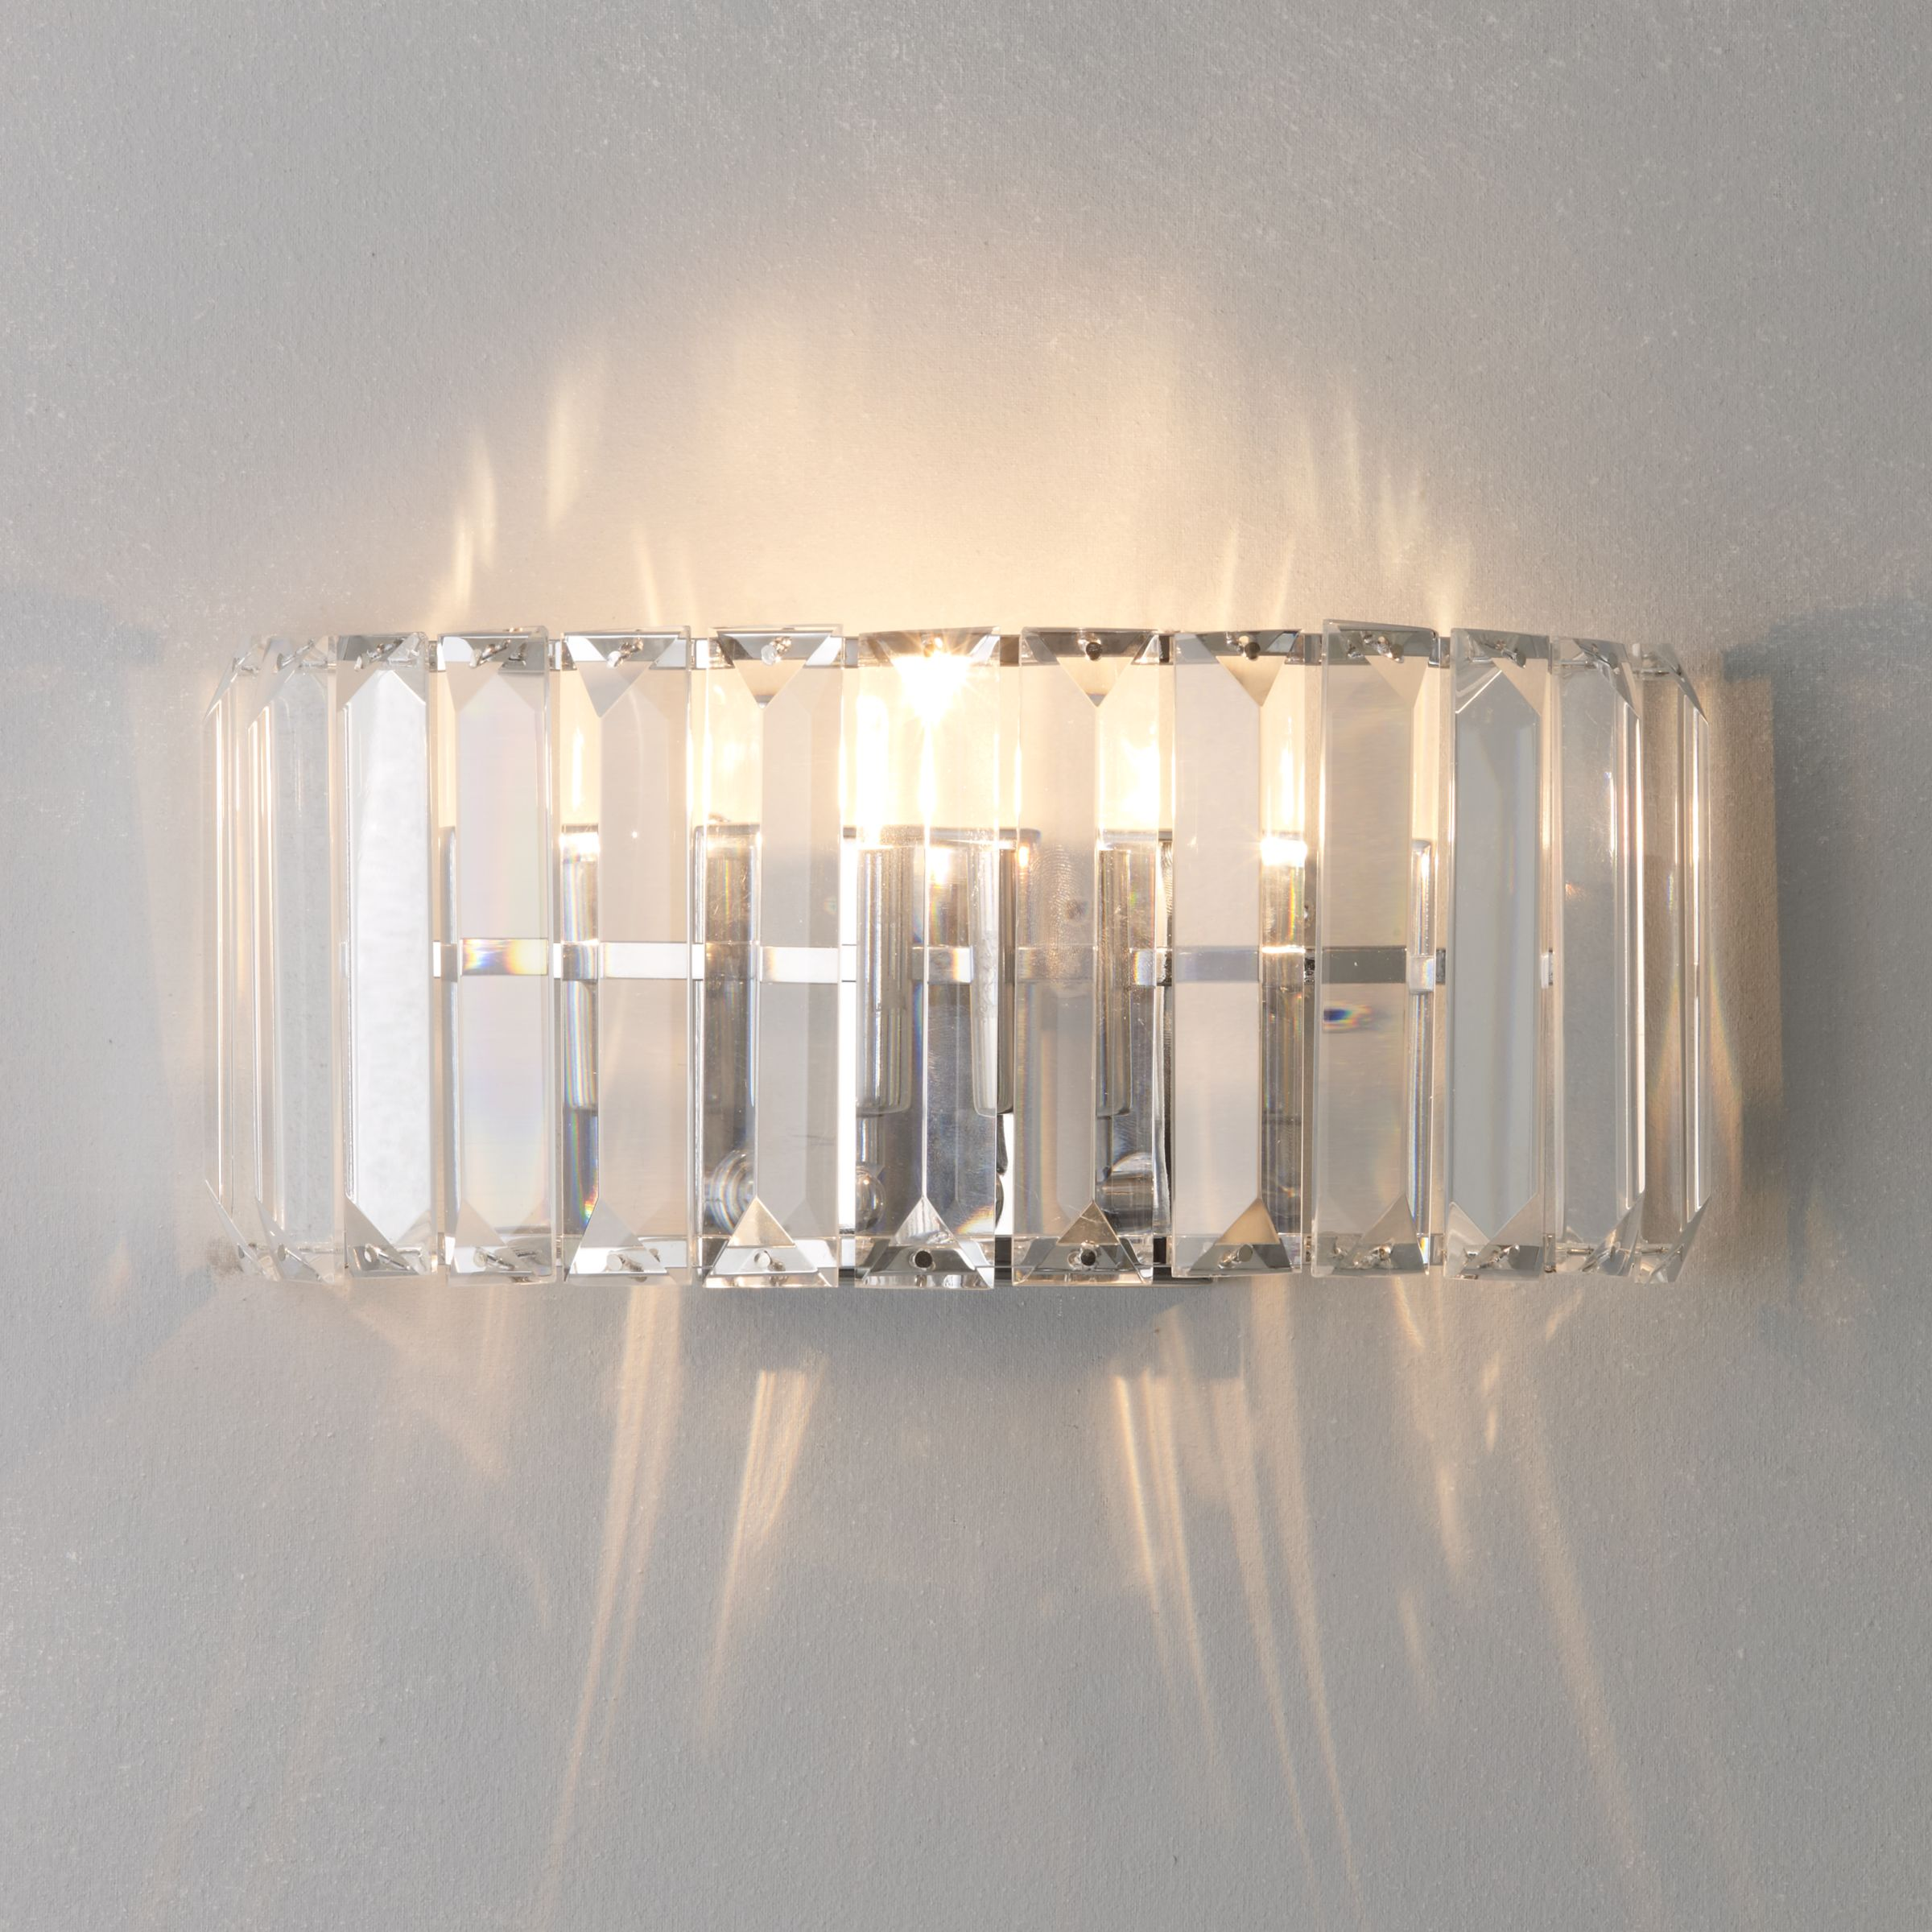 John Lewis Wall Lights Glass : Buy John Lewis Frieda Wall Light John Lewis